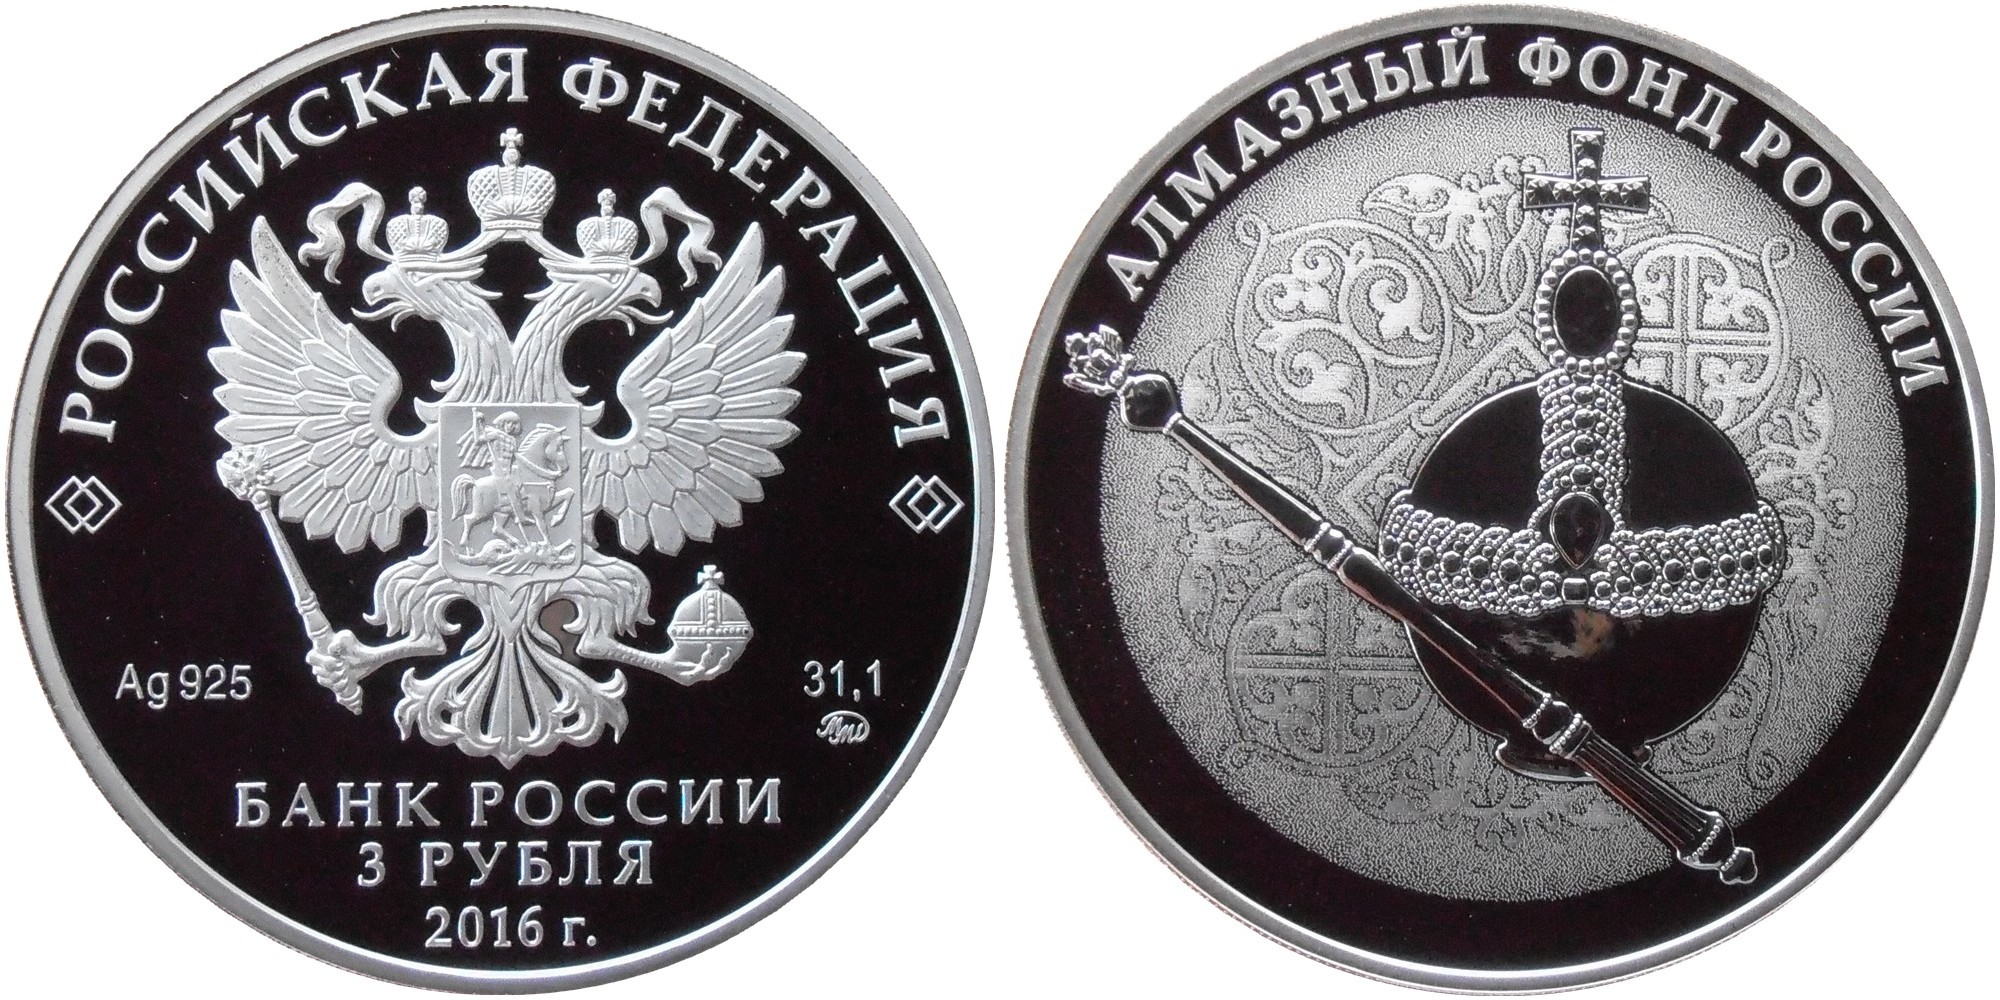 RUSSIE 3 ROUBLES 2016 - DIAMANTS DE RUSSIE : SCEPTRE IMPERIAL